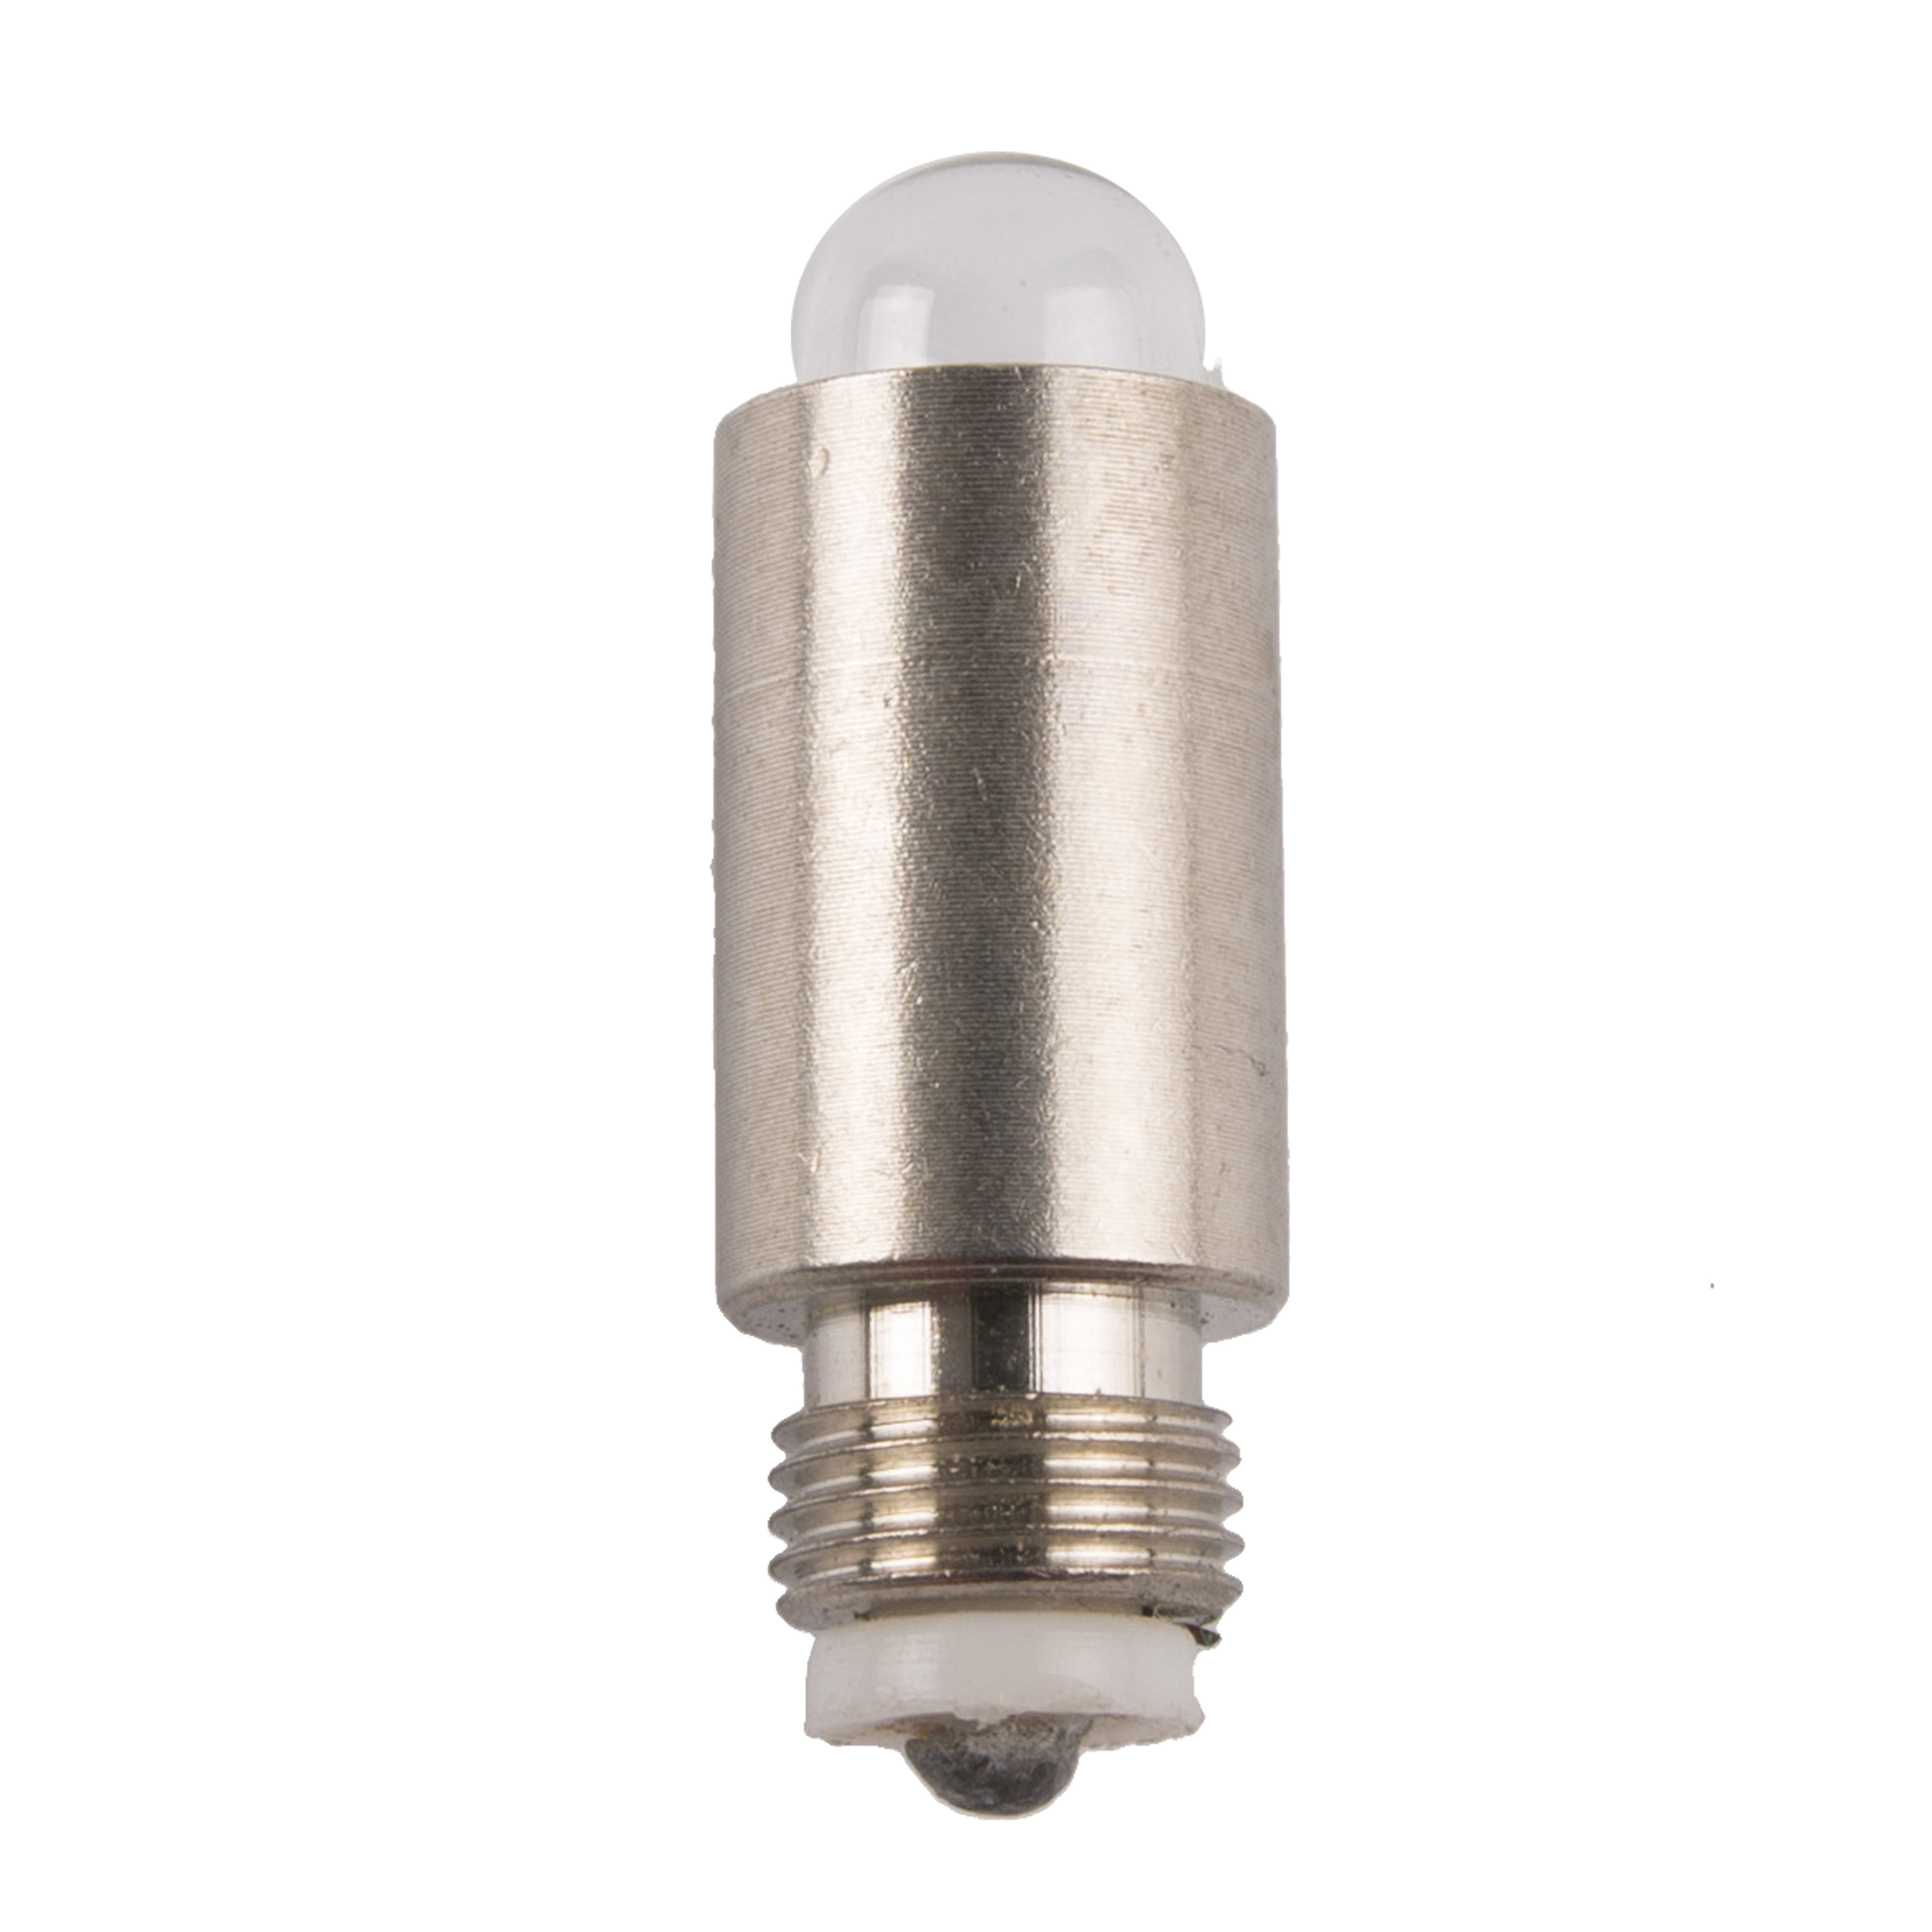 3.5v Otoscope head replacement lamp 049